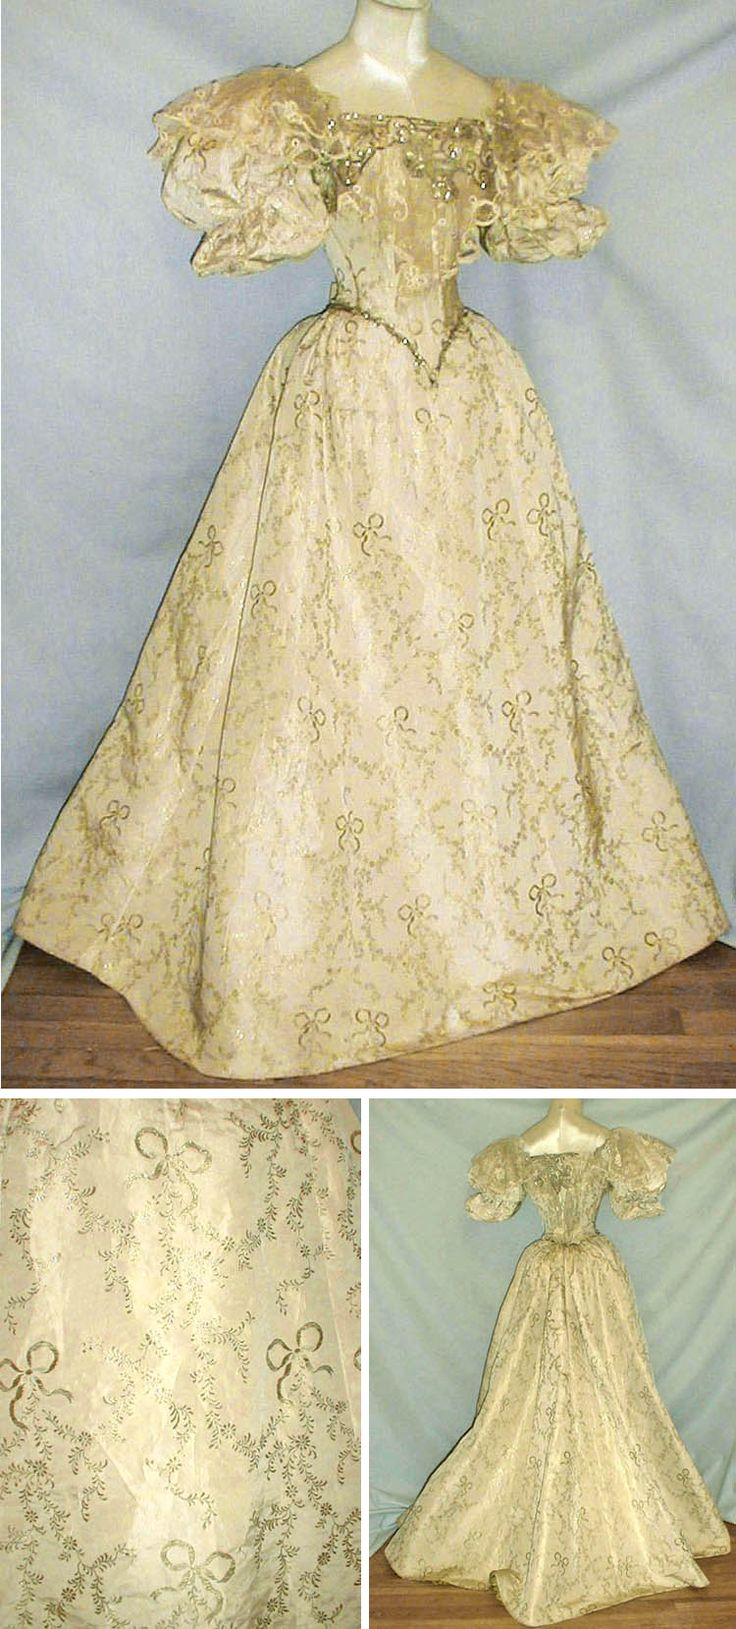 Evening gown ca. 1890s, de-accessioned from the Metropolitan Museum of Art. Ivory and gold metallic silk brocade has gold metallic ribbon bows vine pattern. Bodice has short puffed sleeves trimmed with silver and mother of pearl beading. Also trimmed with lace that extends over top of sleeve and net lace covered with beading. Back lacing closure. Bodice and skirt lined with green silk. fiddybee/ebay